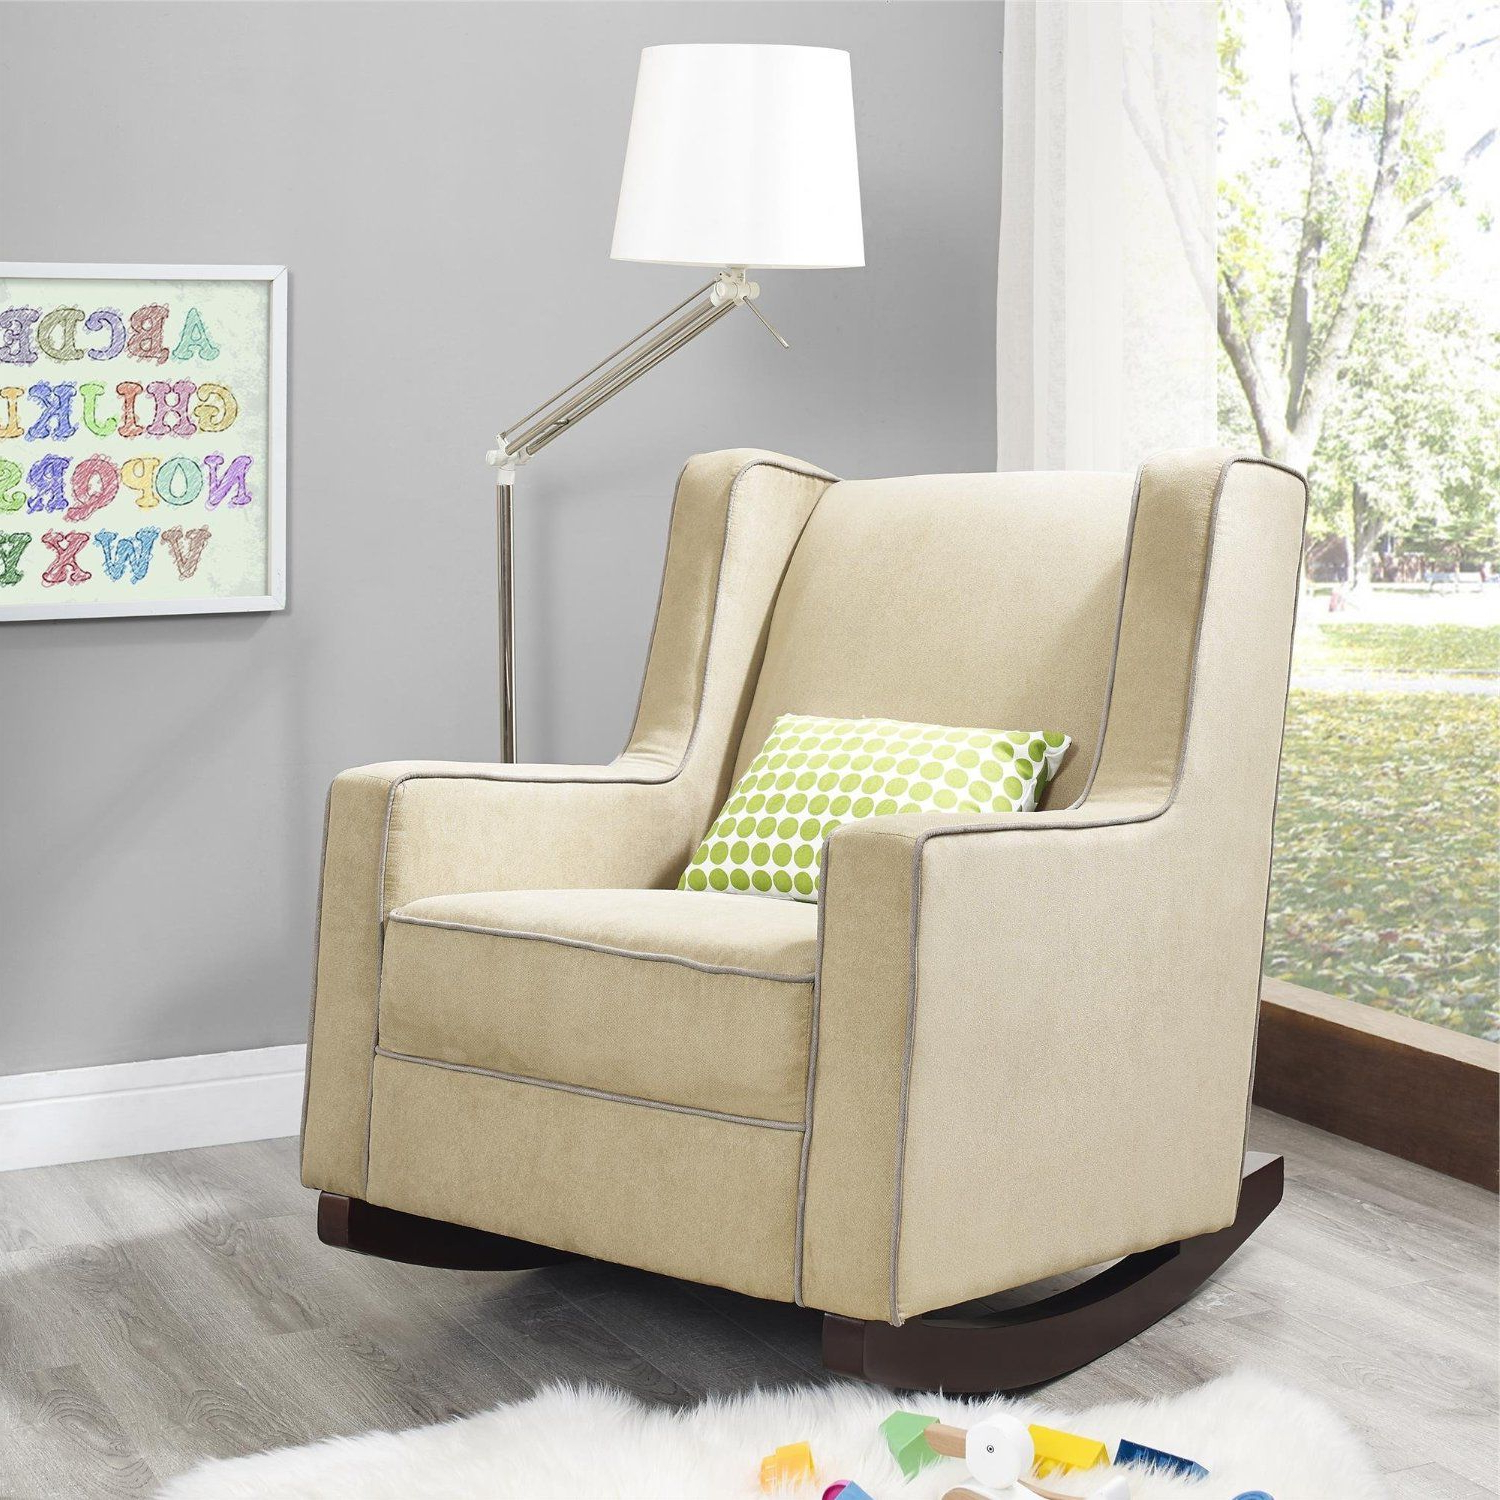 Fashionable Abbey Swivel Glider Recliners With Amazon – Baby Relax The Abby Nursery Rocker Chair, Beige (Gallery 17 of 20)